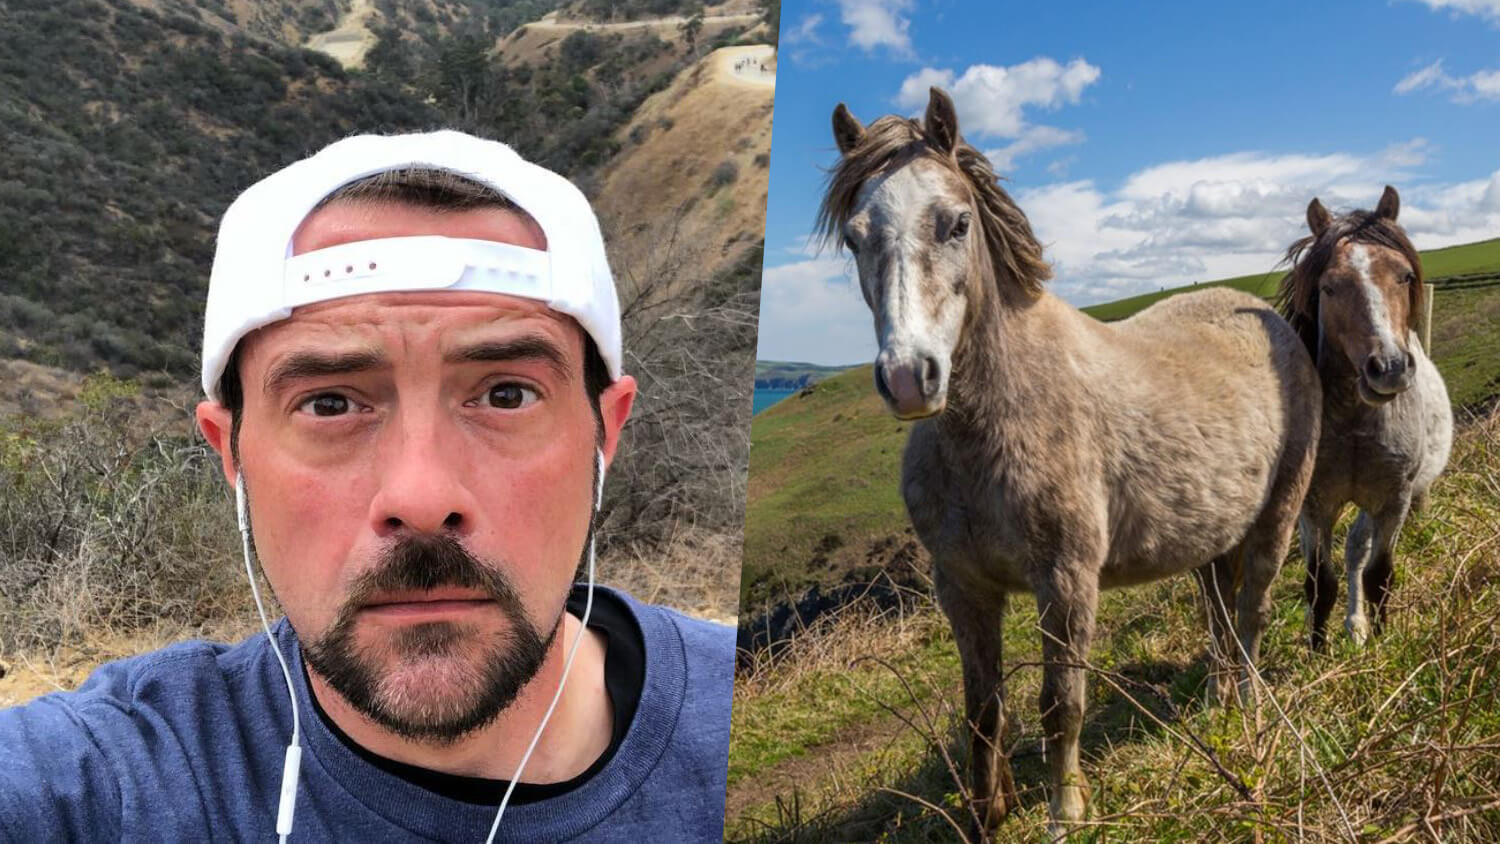 Vegan Filmmaker Kevin Smith Helps Rescue Horses From California's Malibu Woolsey Fire